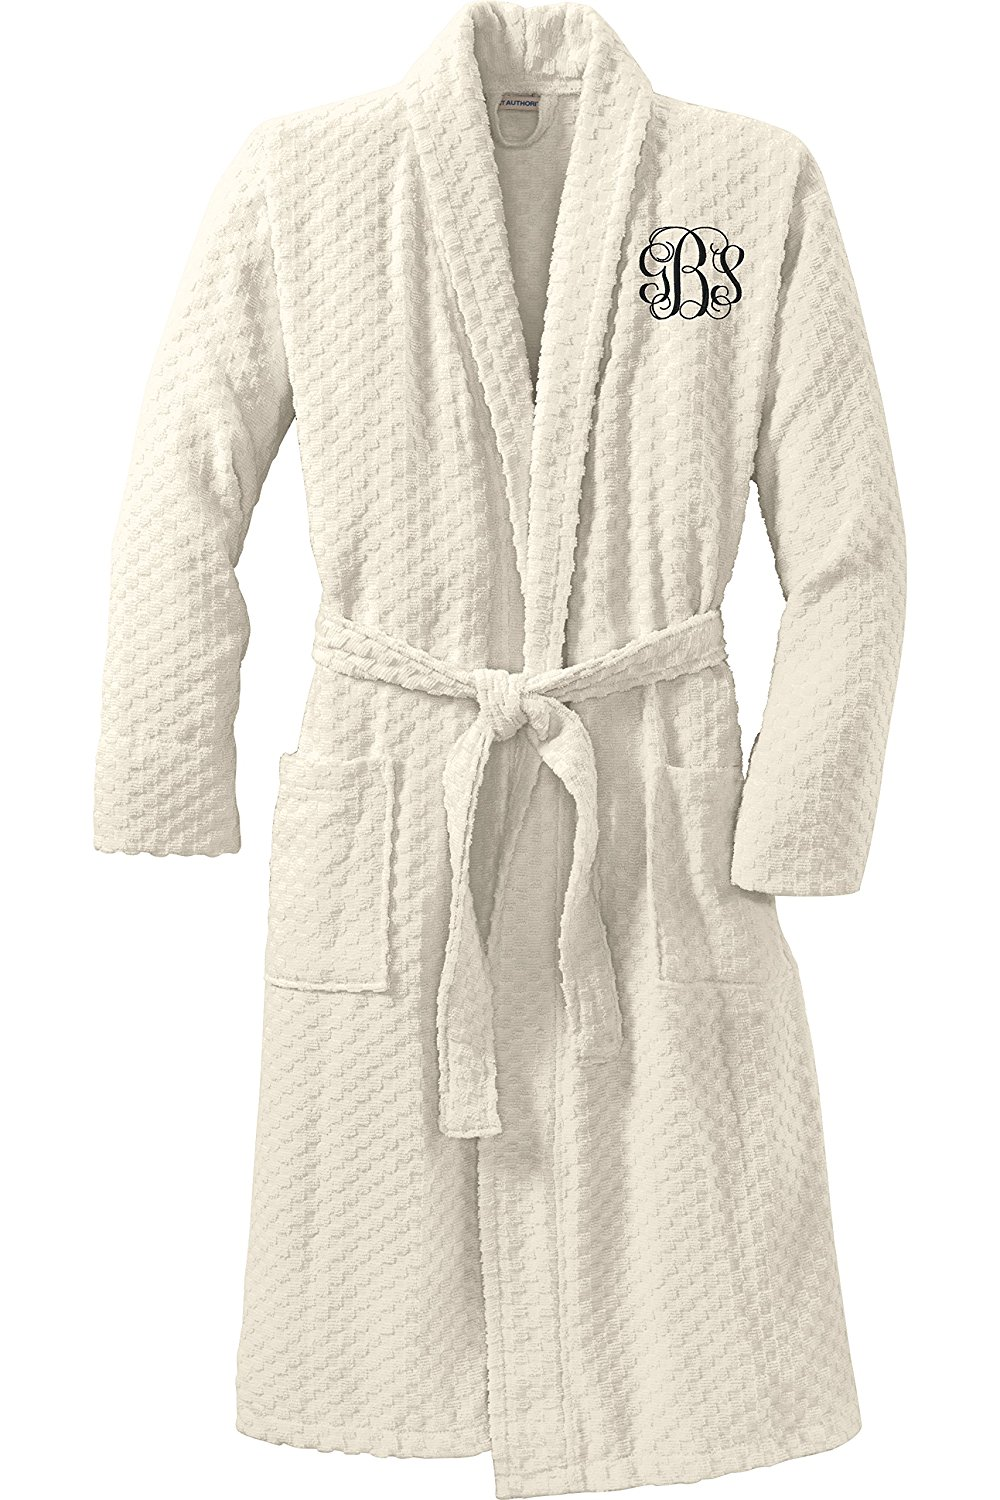 Get Quotations · Personalized Checkered Terry Robe with Embroidered Name 264df8e43